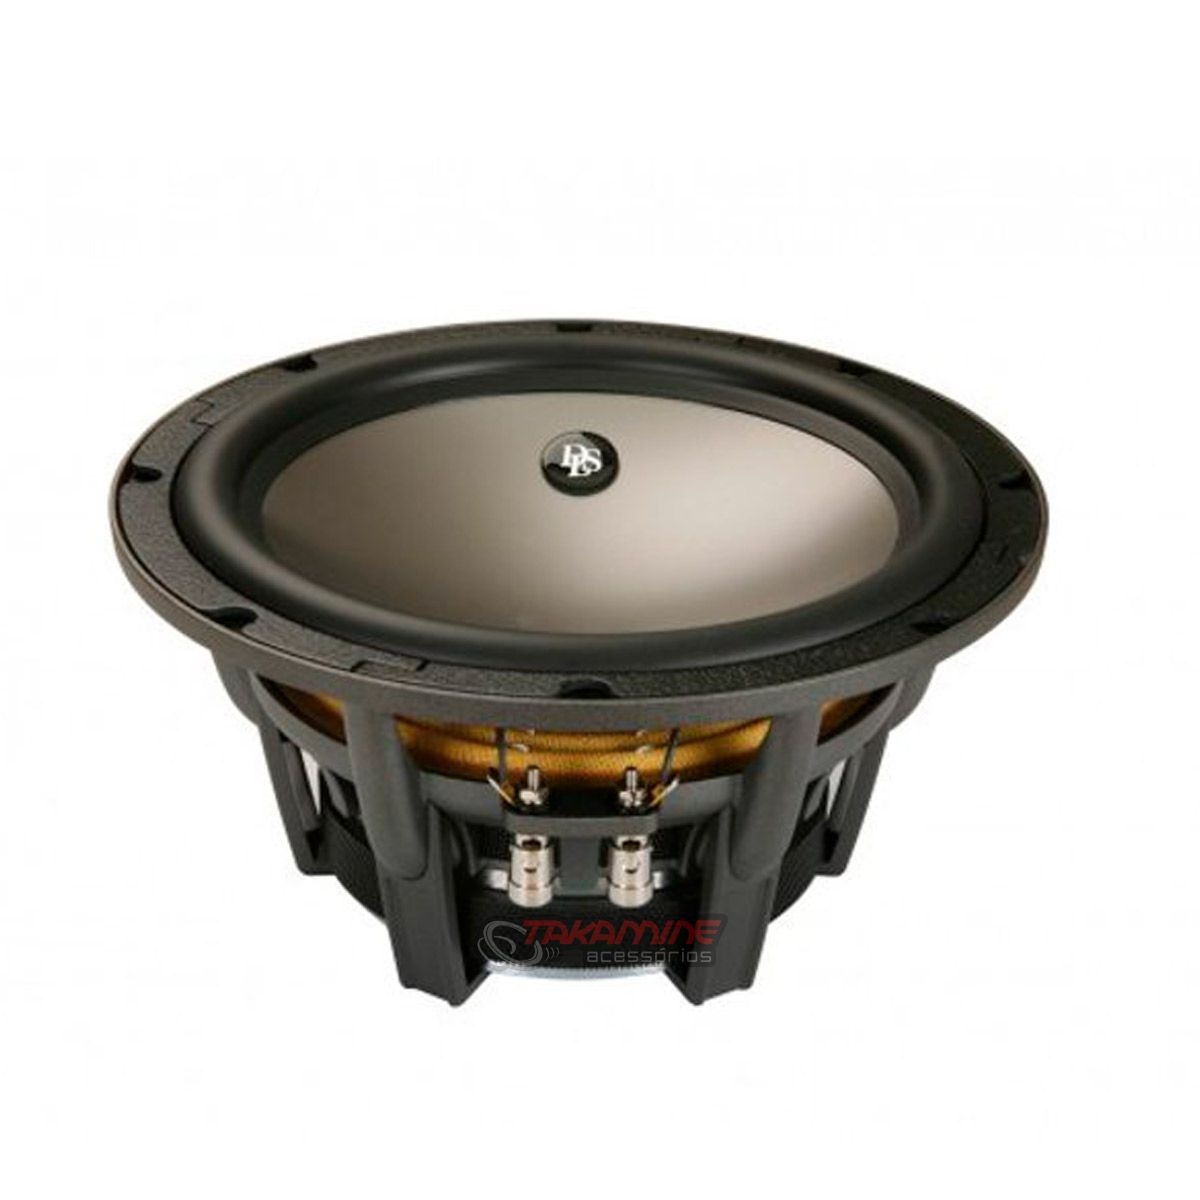 "Falante subwoofer DLS 10"" Reference Series RMW10D 400WRMS"